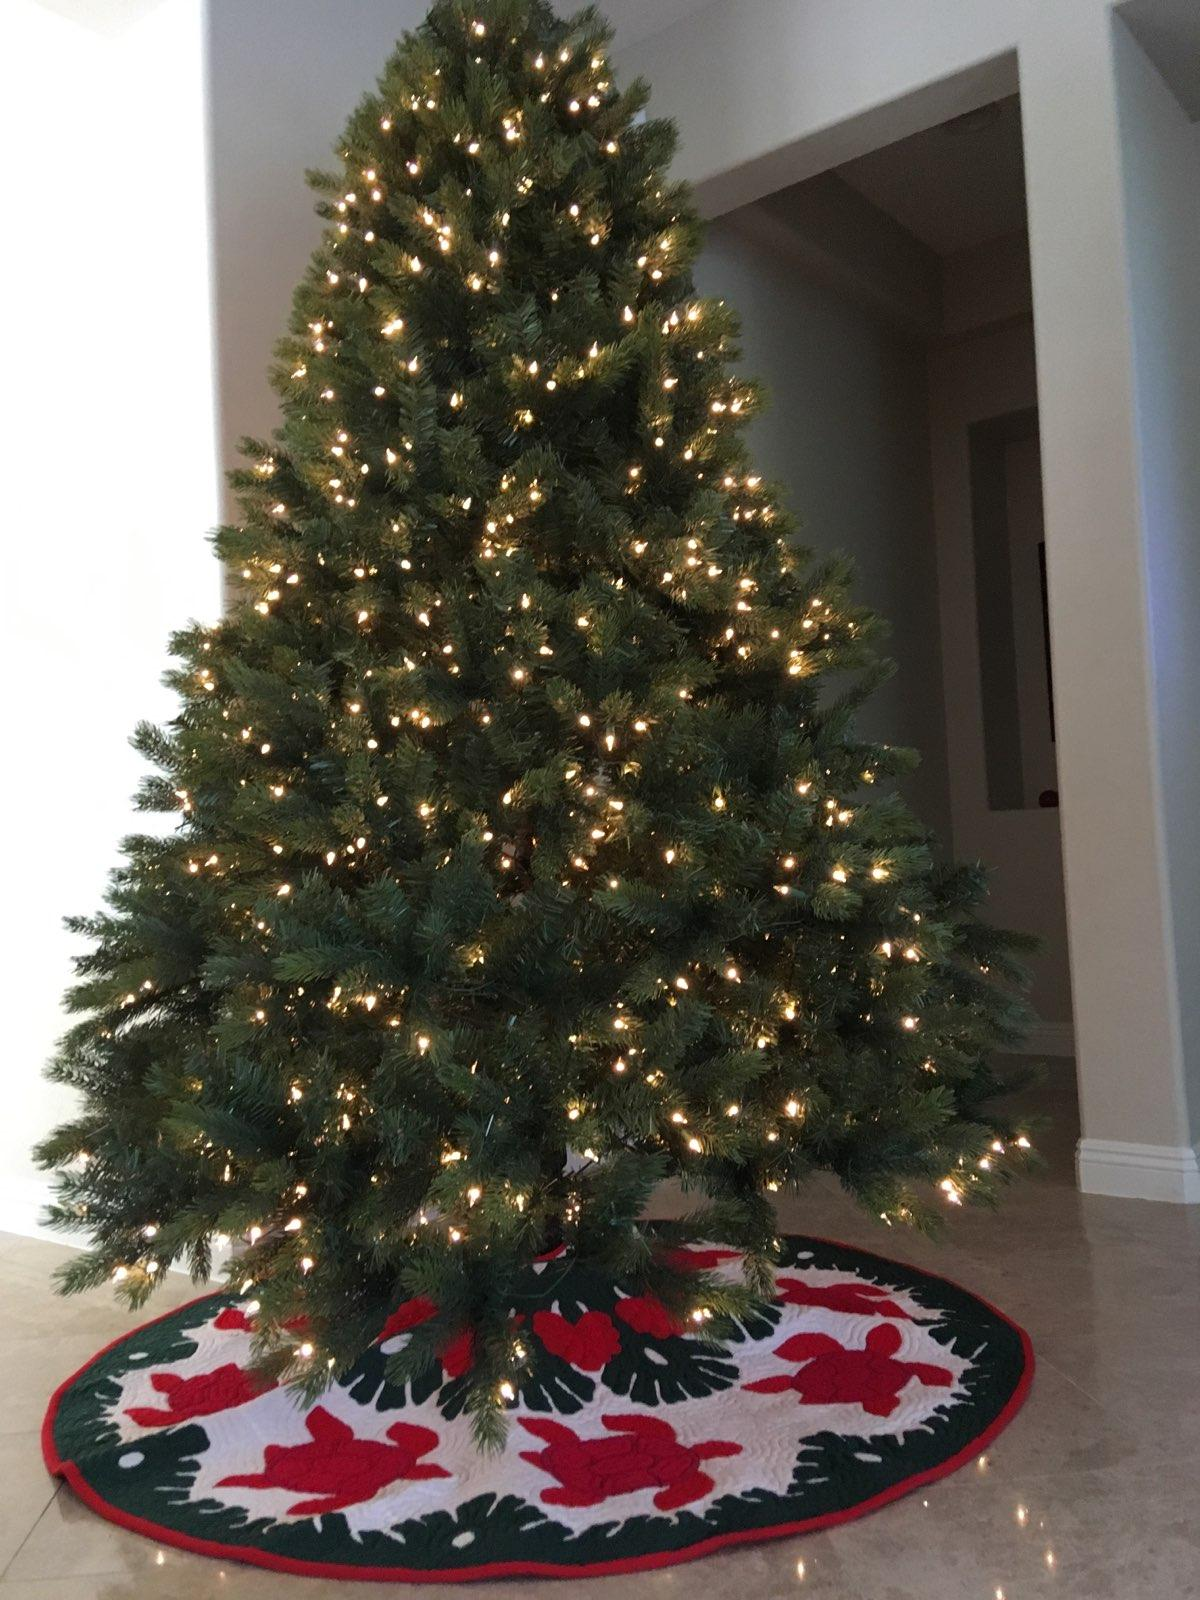 "Lindy's Christmas tree skirt (60"" diameter)"